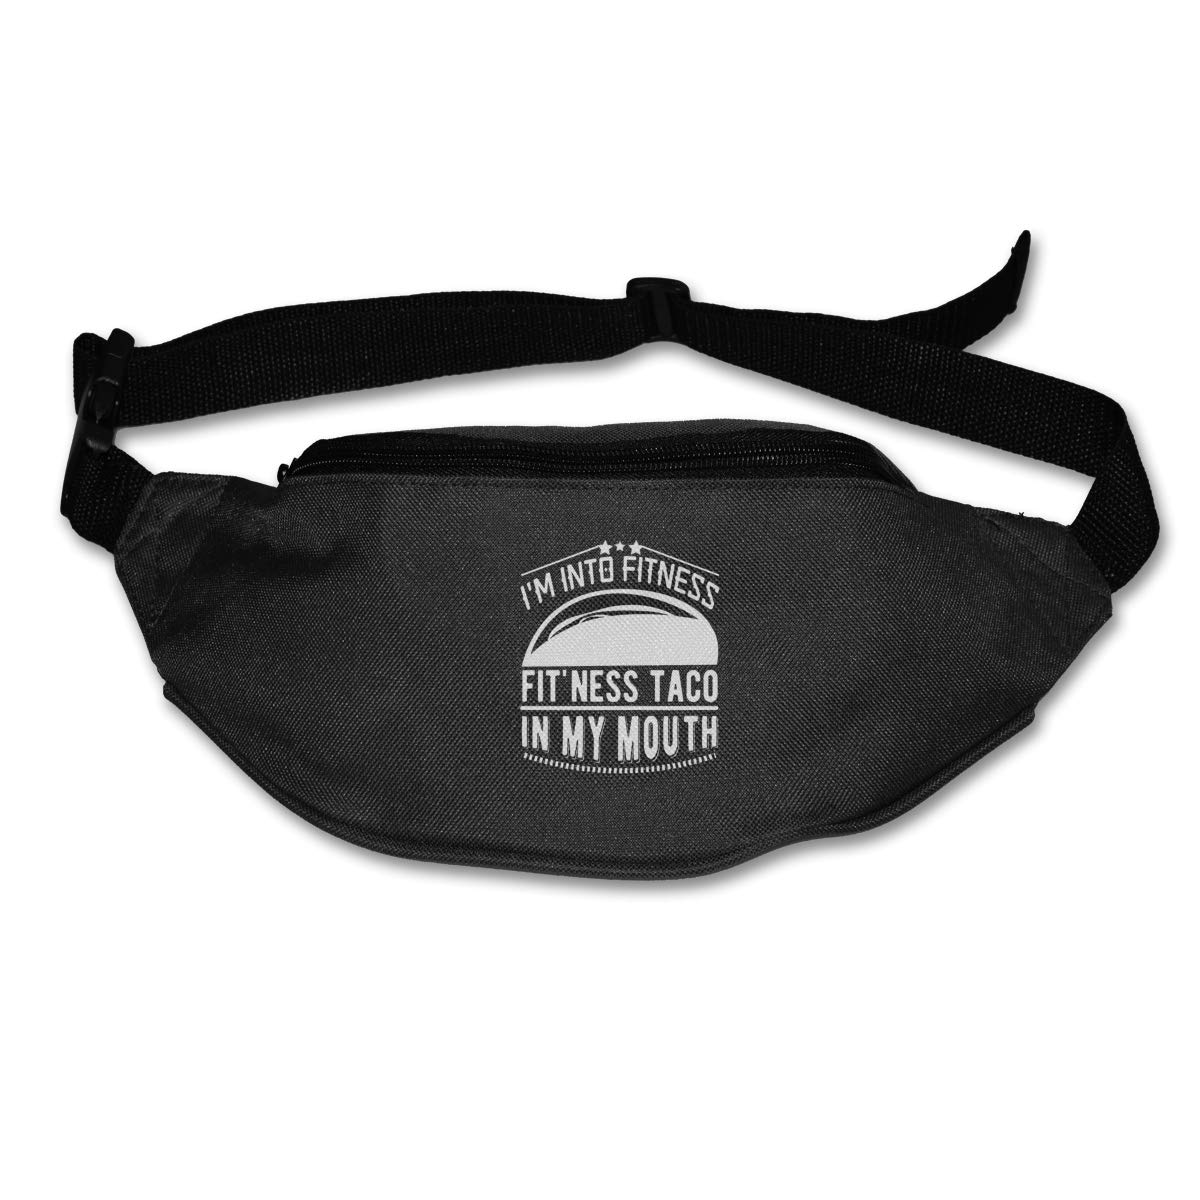 Im Into Fitness Fitness Taco In My Mouth Waist Pack Fanny Pack For Travel